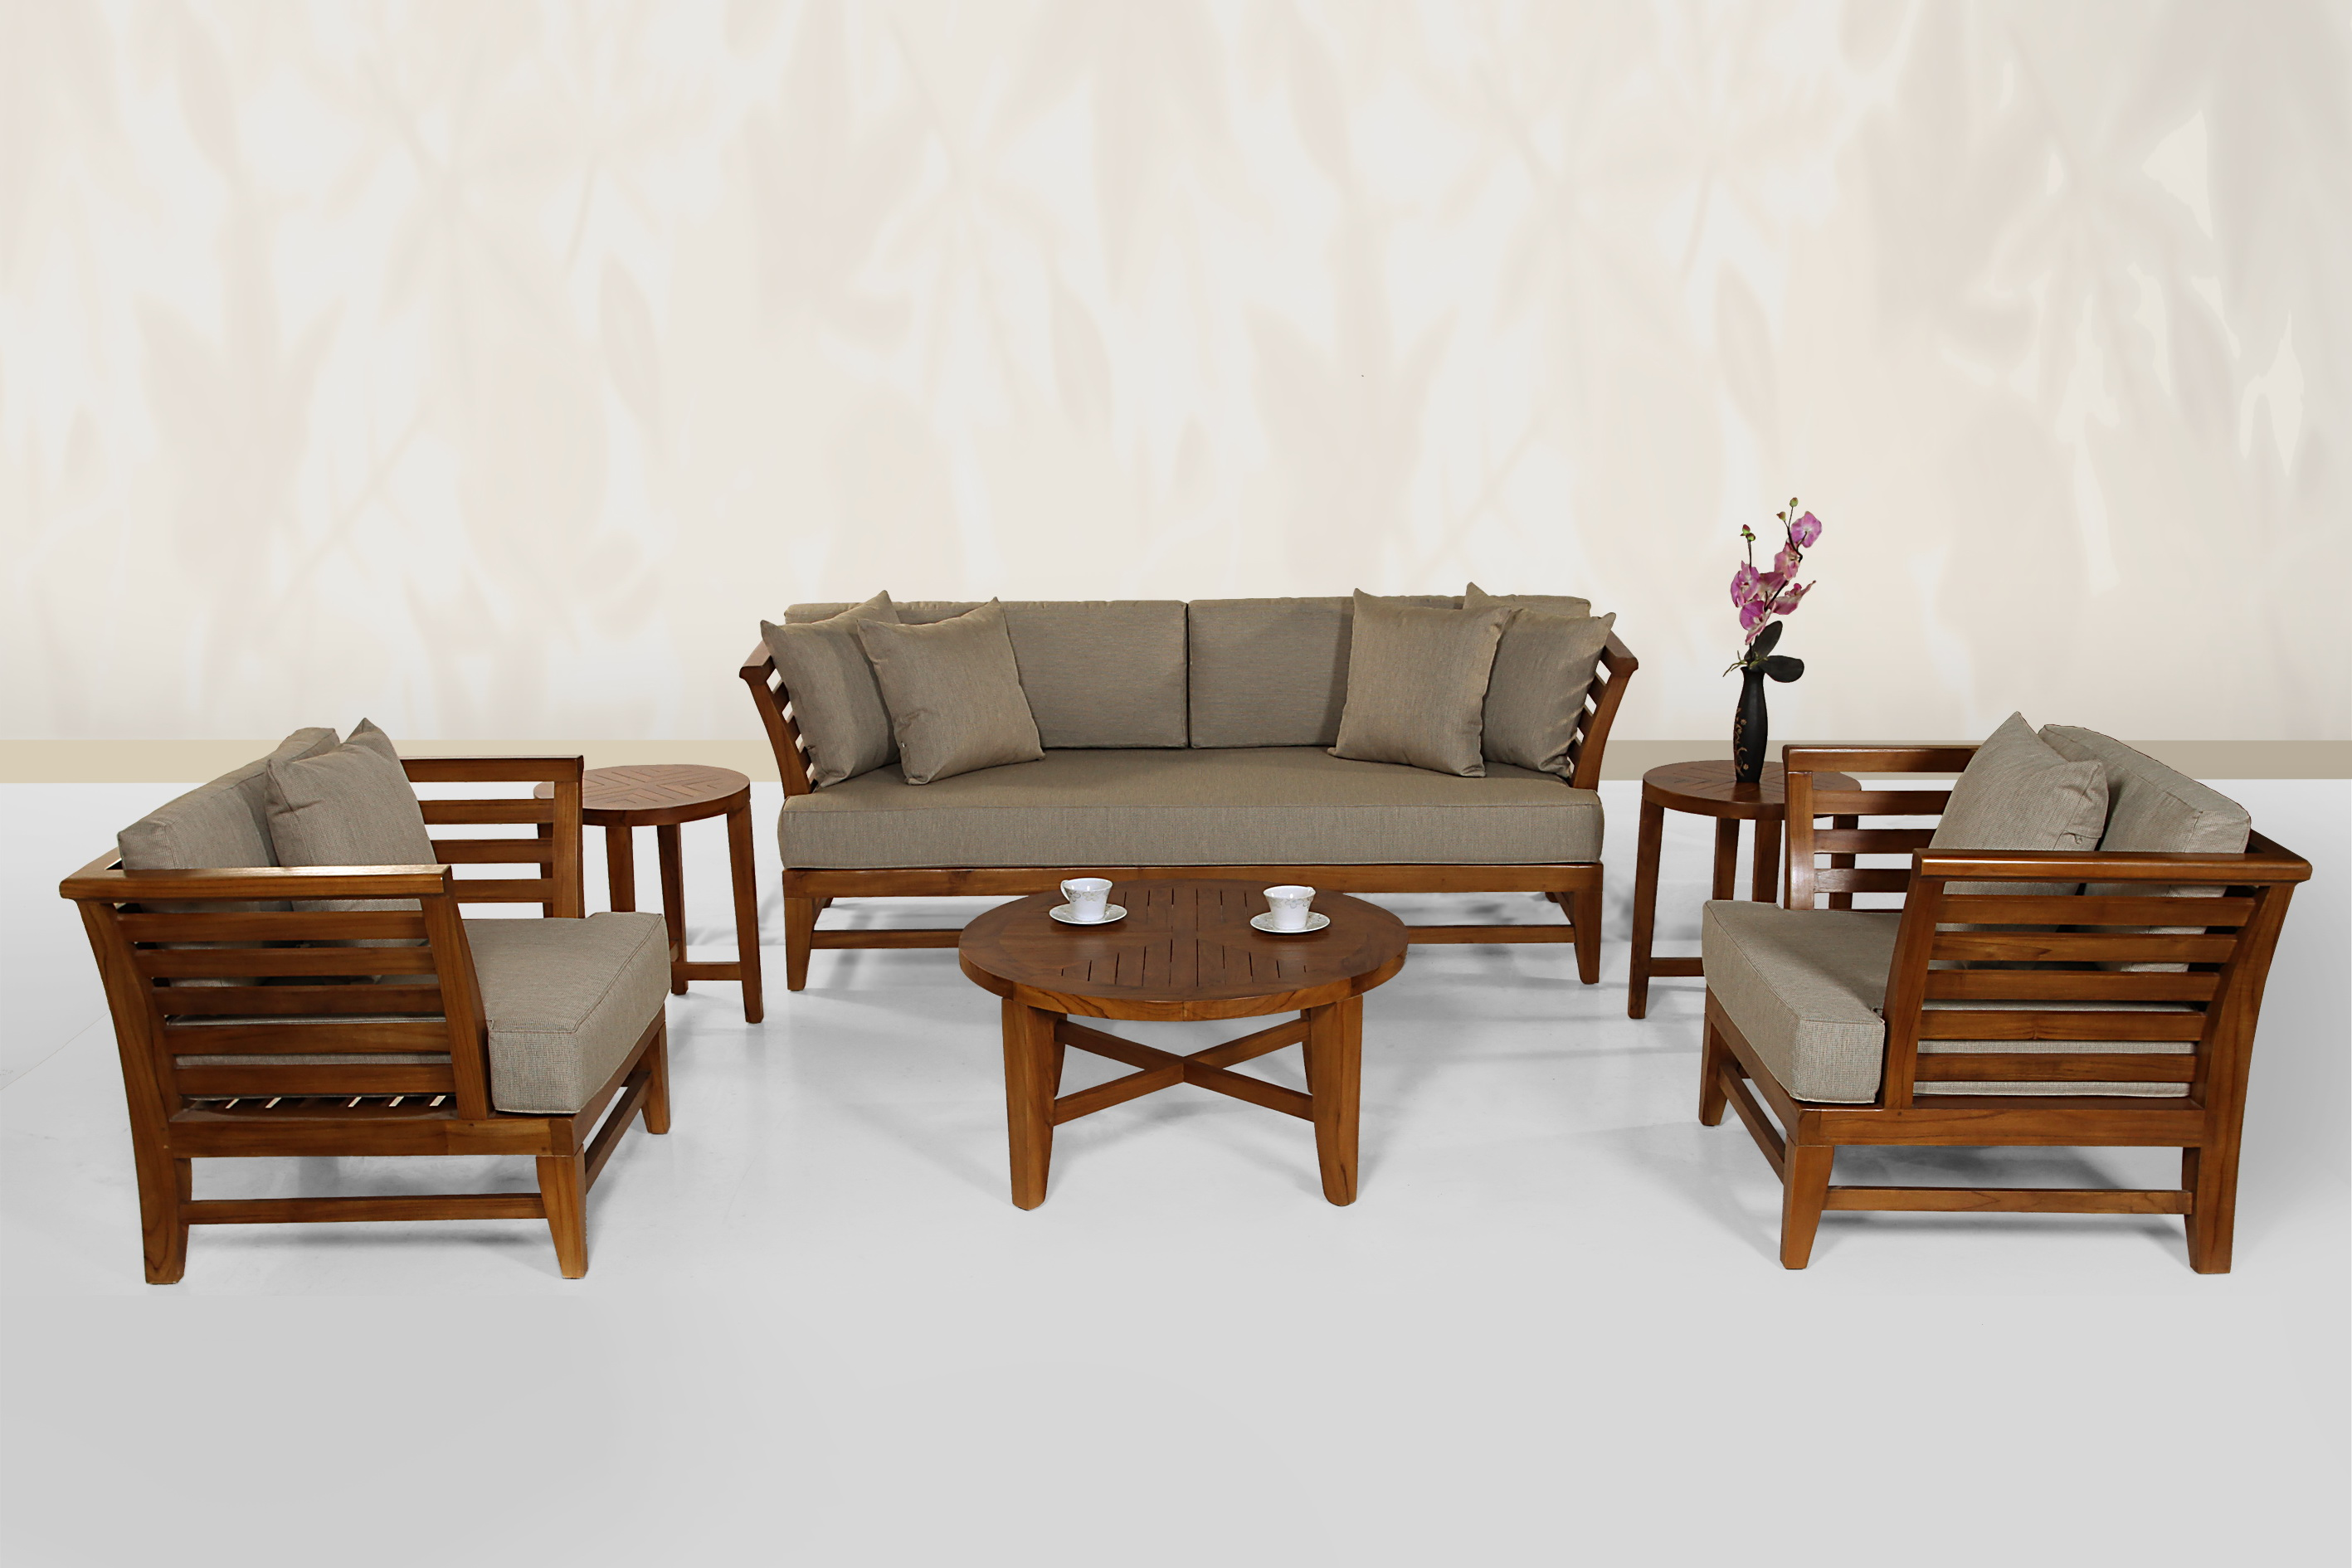 Teak Sofa Set Teak Wood Sofa Set Teak Sofa In Klang Furniture Furniture And Furnishings